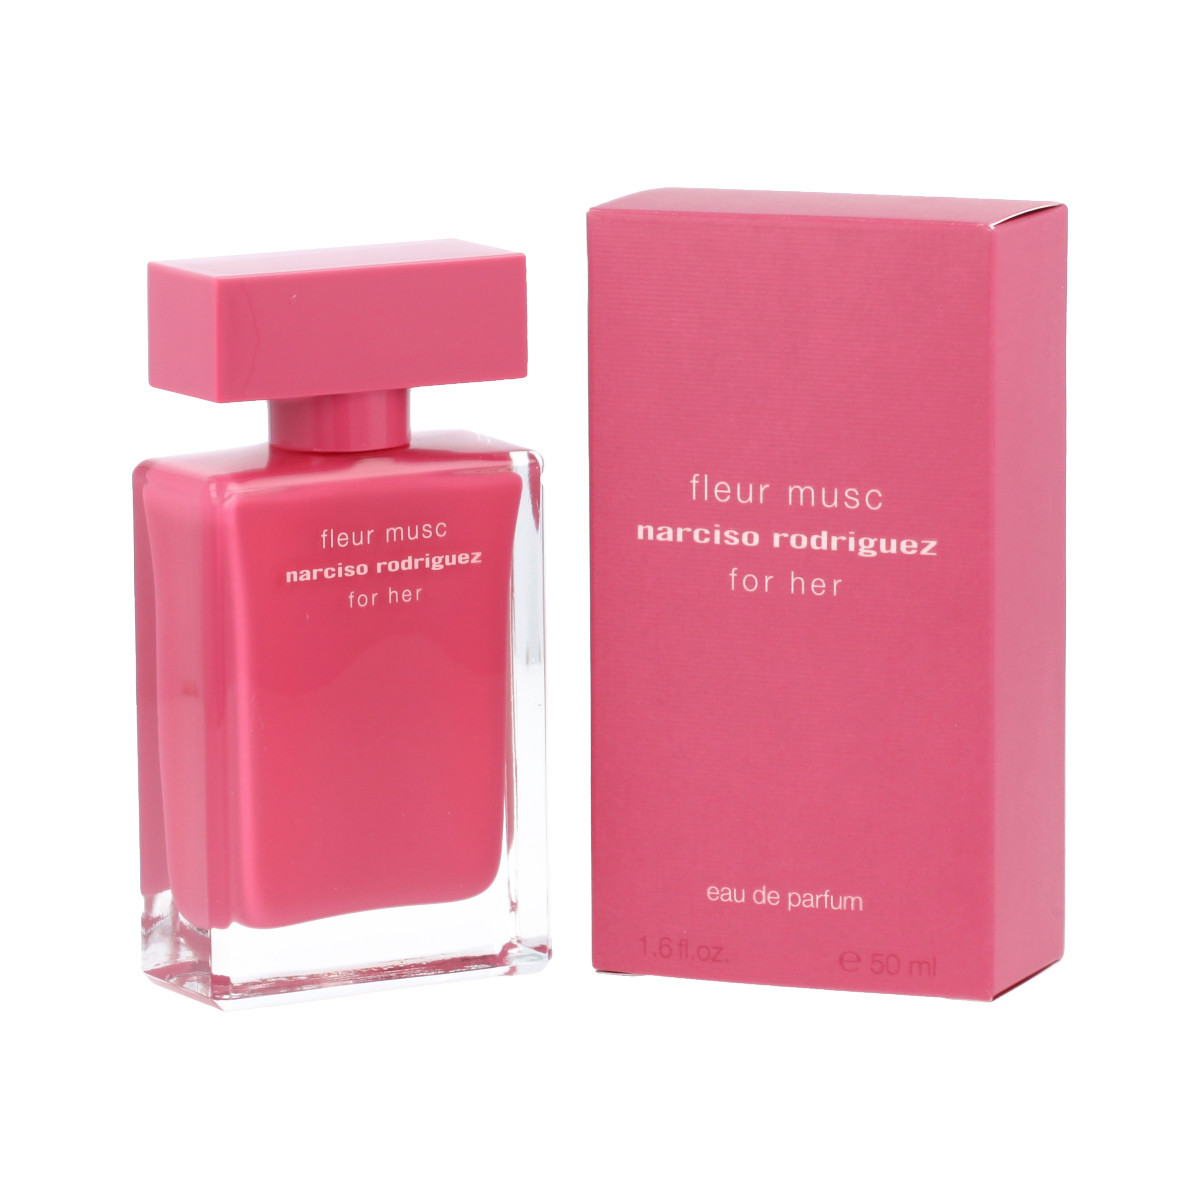 Narciso Rodriguez Fleur Musc for Her Eau de Parfum (donna) 50 ml